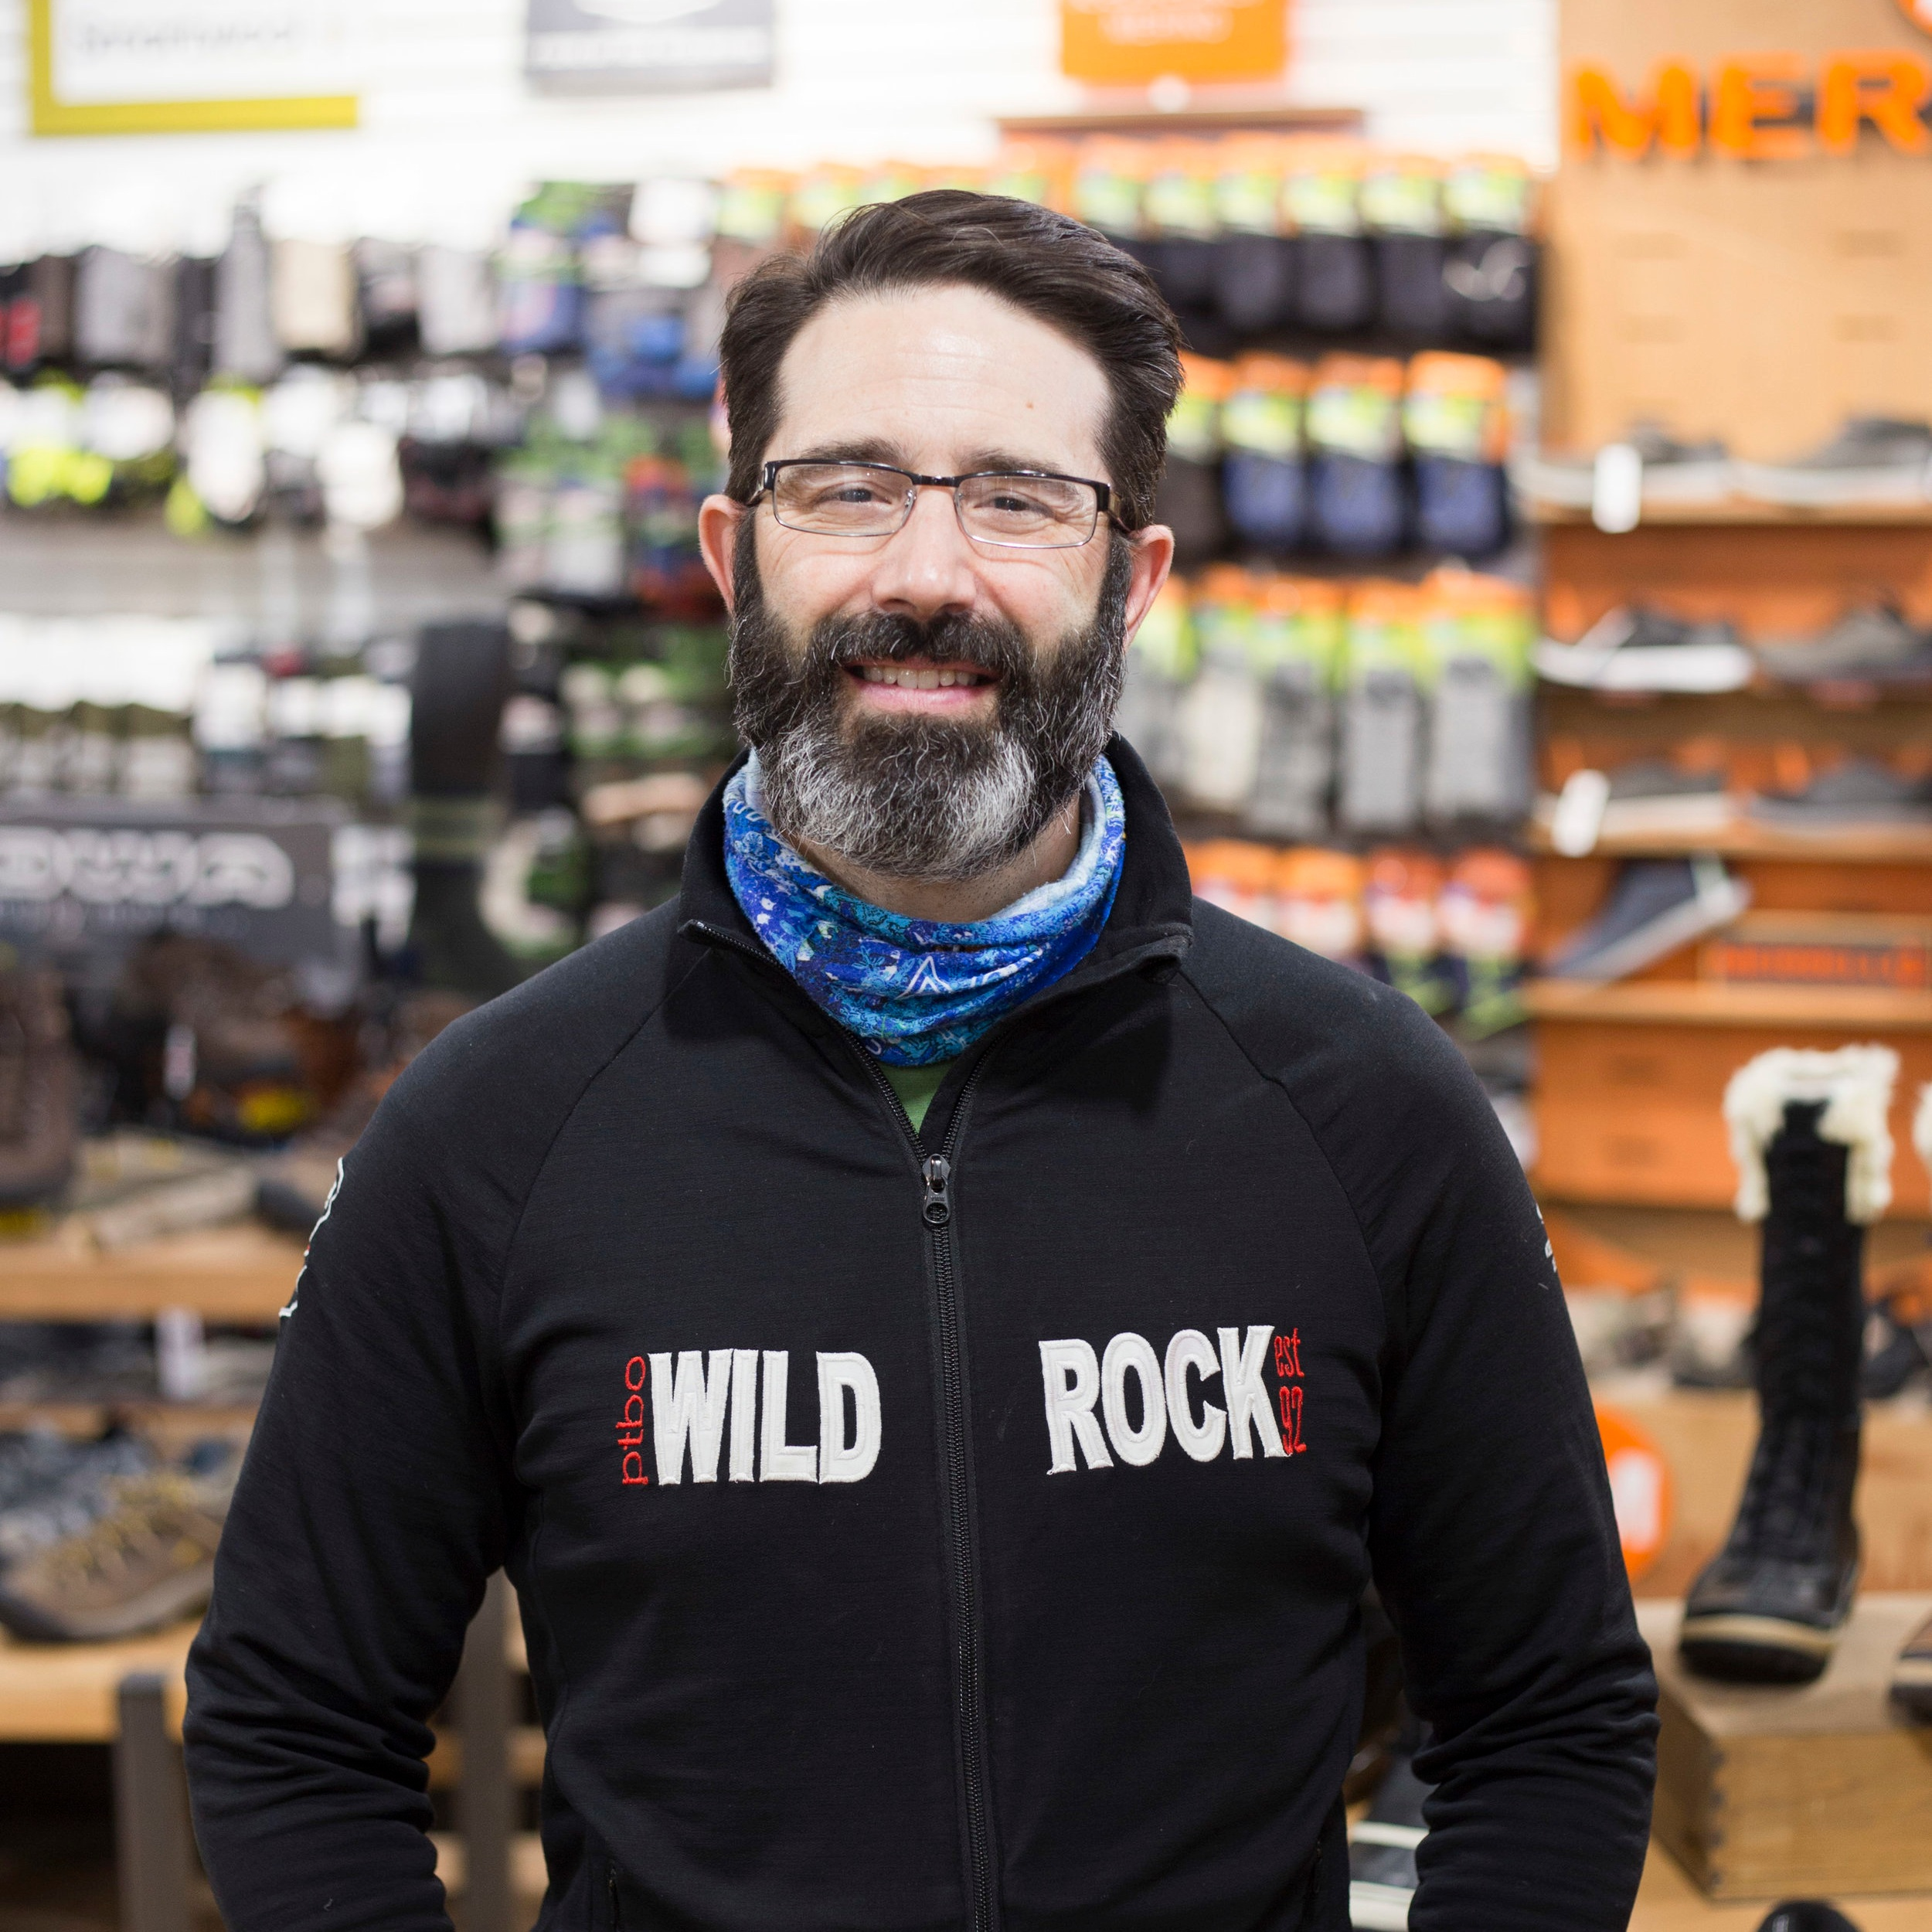 Jon Moreno   Jon has been a leading figure of the Wild Rock Team for 25 years. He is our Sales Floor Manager and has incredible knowledge of local parks and waterways. He is incredibly active in the cyclocross community and puts on our various film festivals as well.